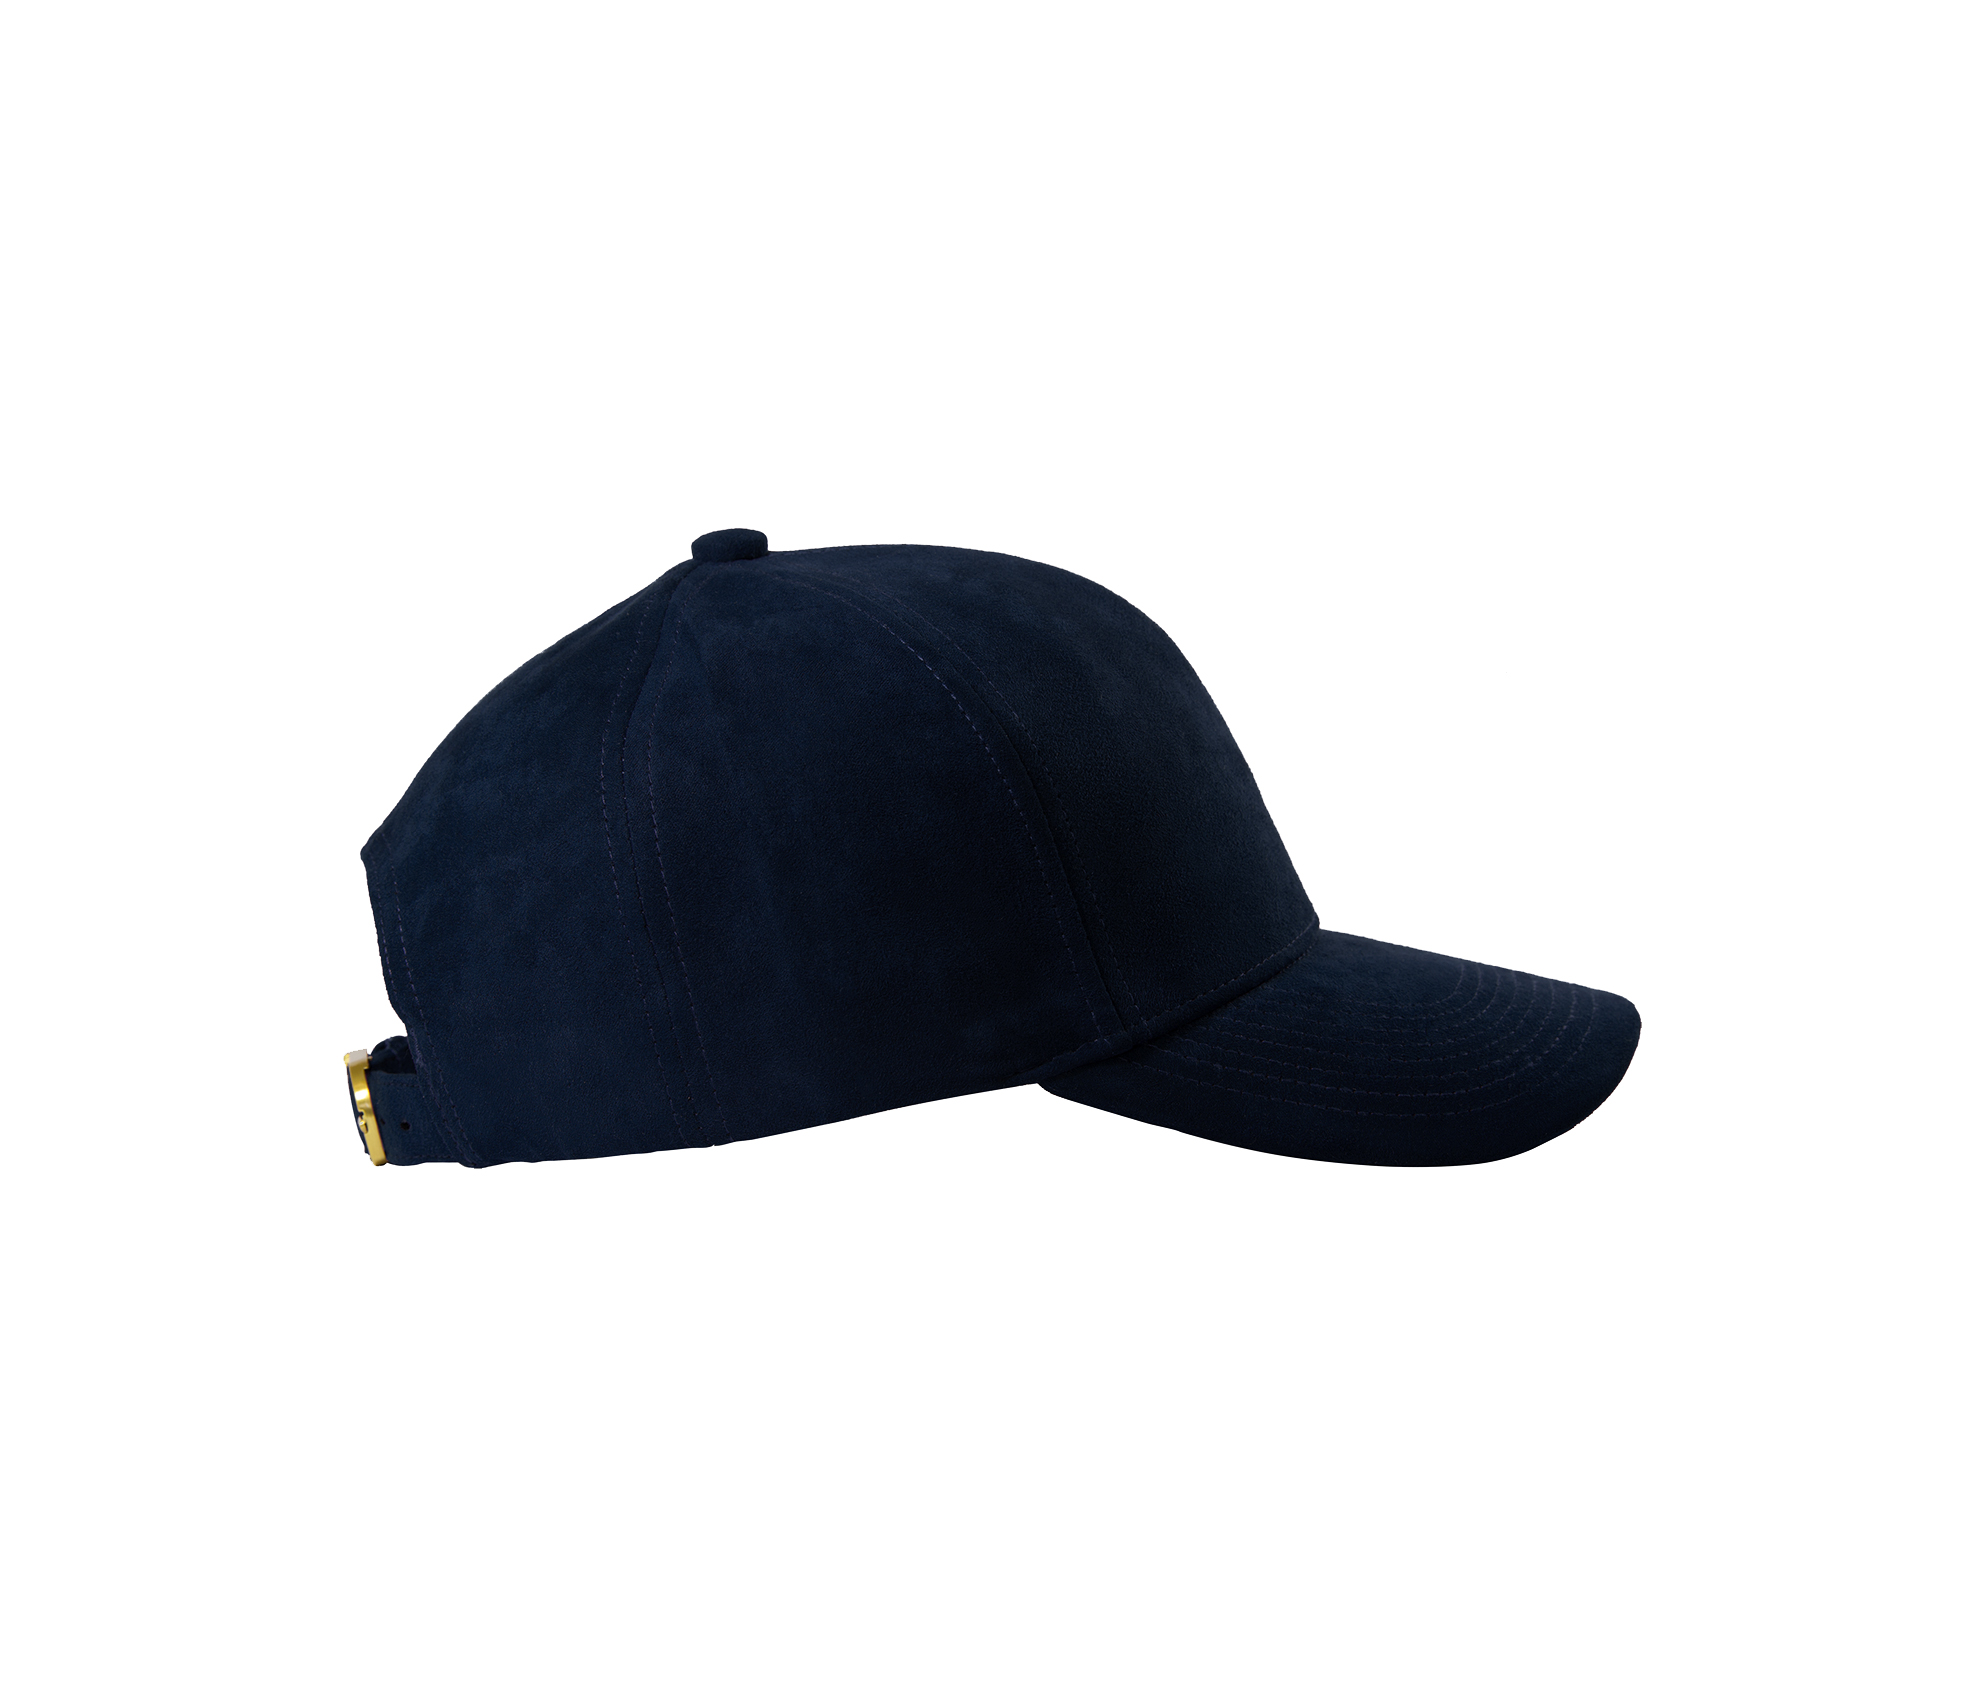 BASEBALL CAP NAVY BLUE GOLD SUEDE SIDE